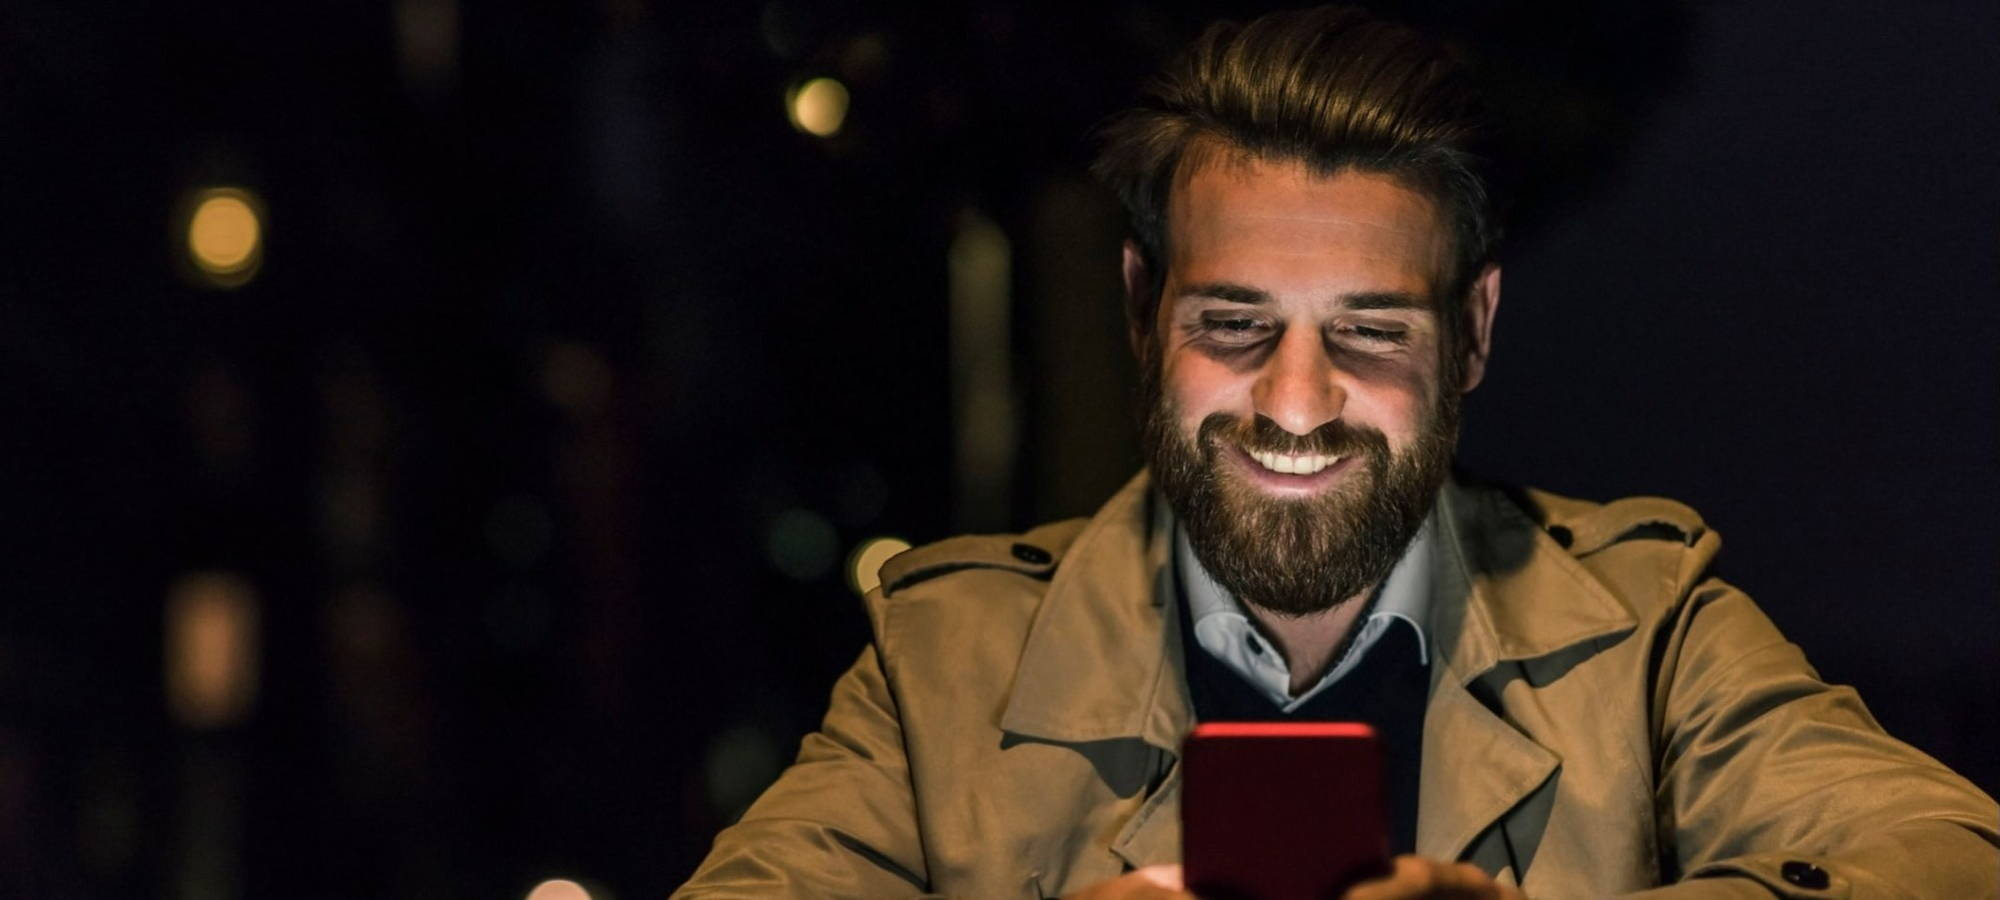 Featured Jobs - Man Smiling At Phone